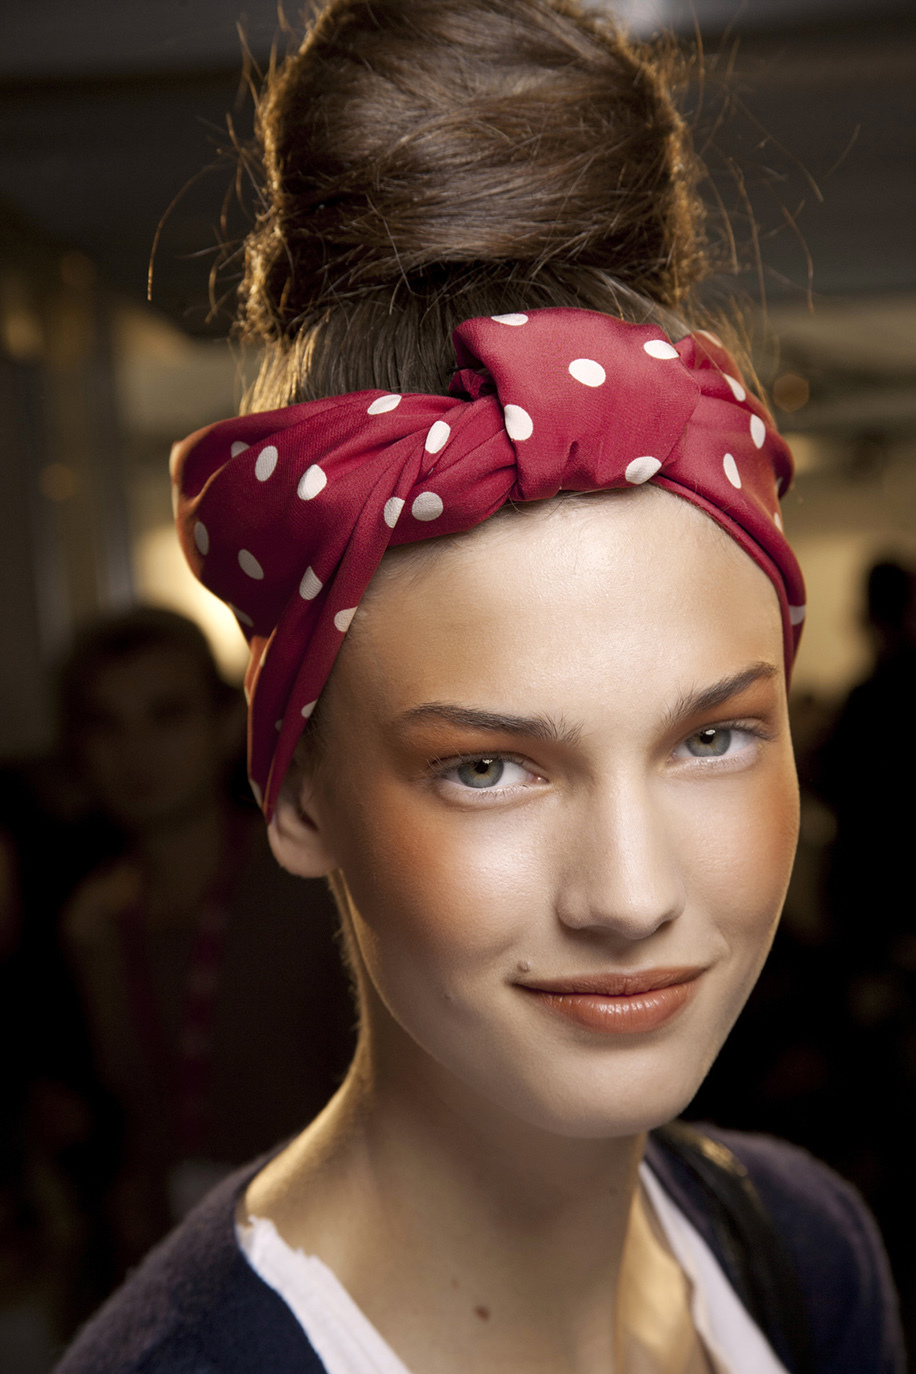 how-to-style-hair-accessories-scarf-scarves-bandana-silk-moschino-red-polkadots-messy-bun.jpg